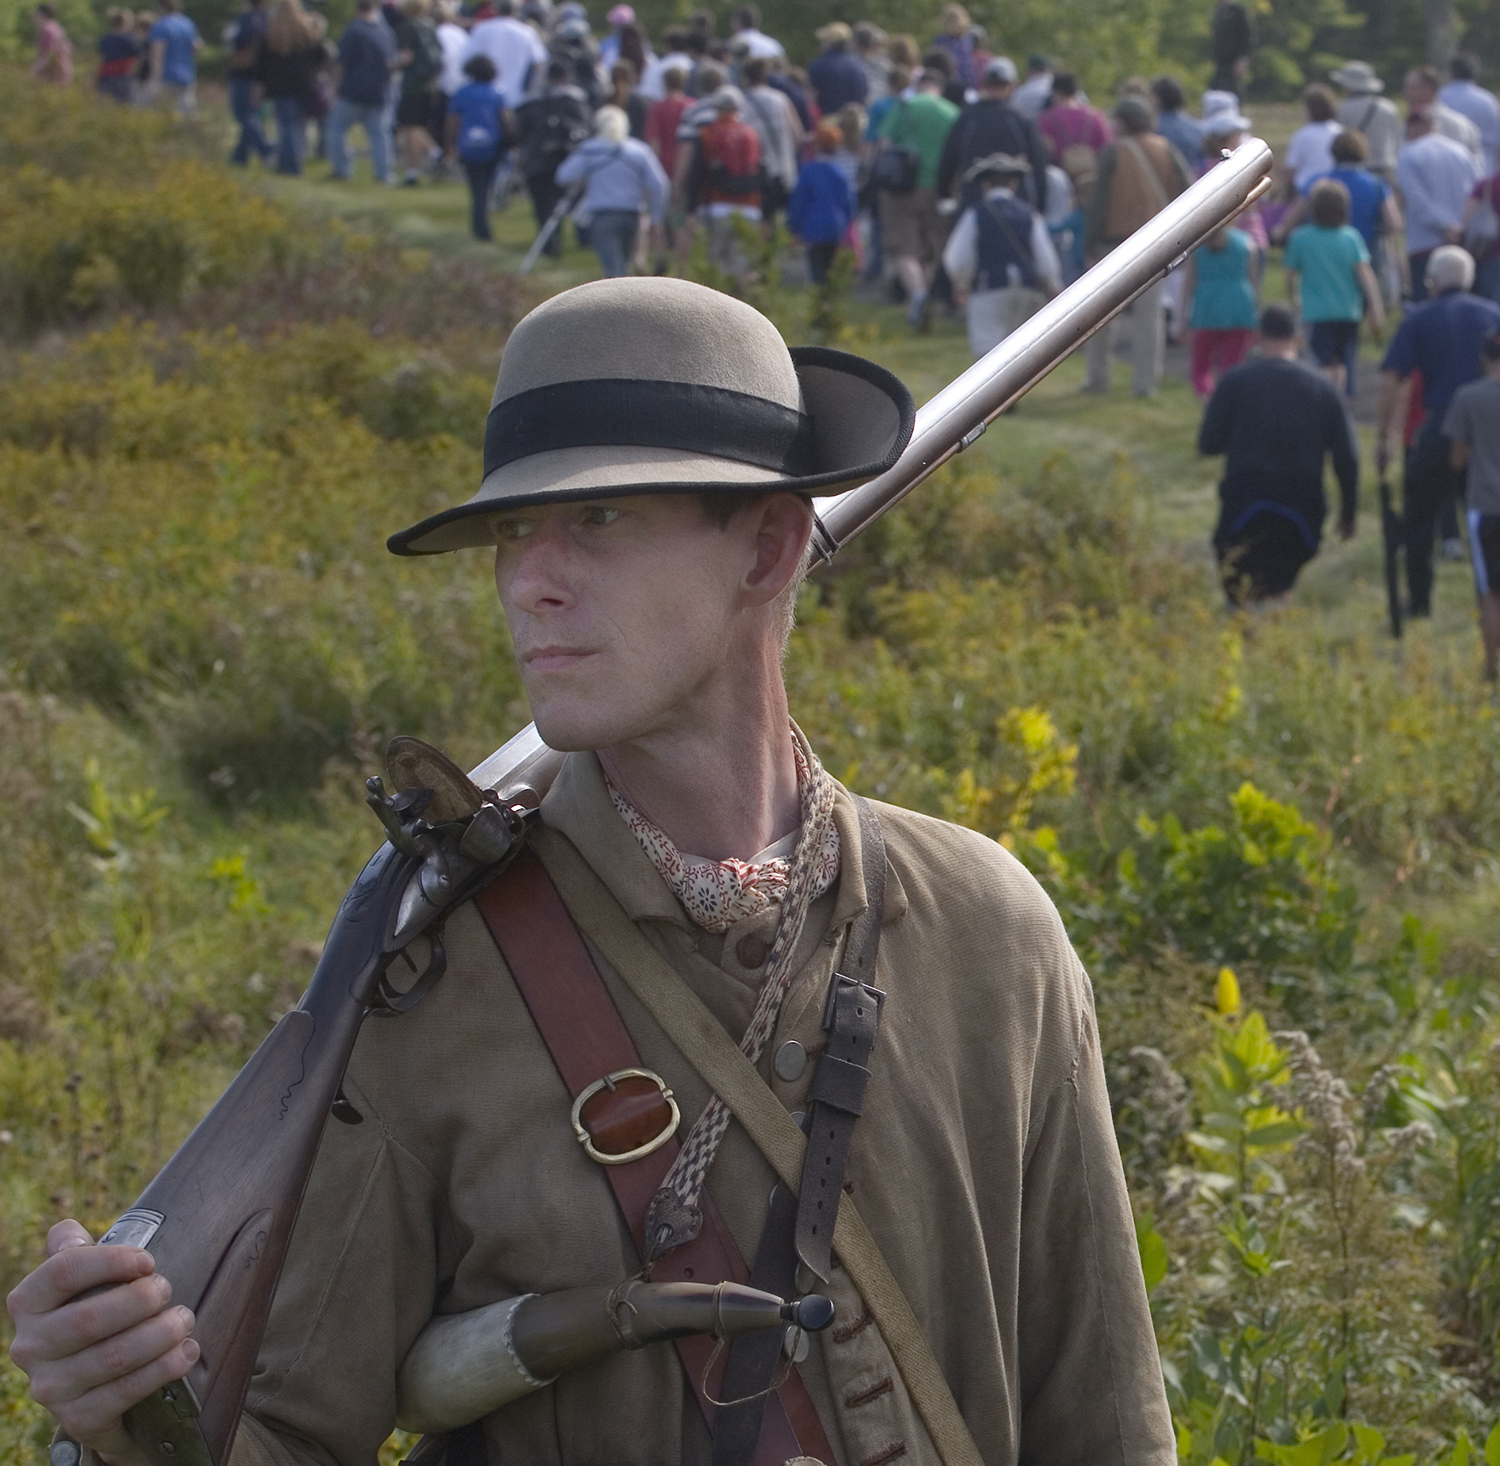 Colonial soldier holding musket, crowd of visitors in background